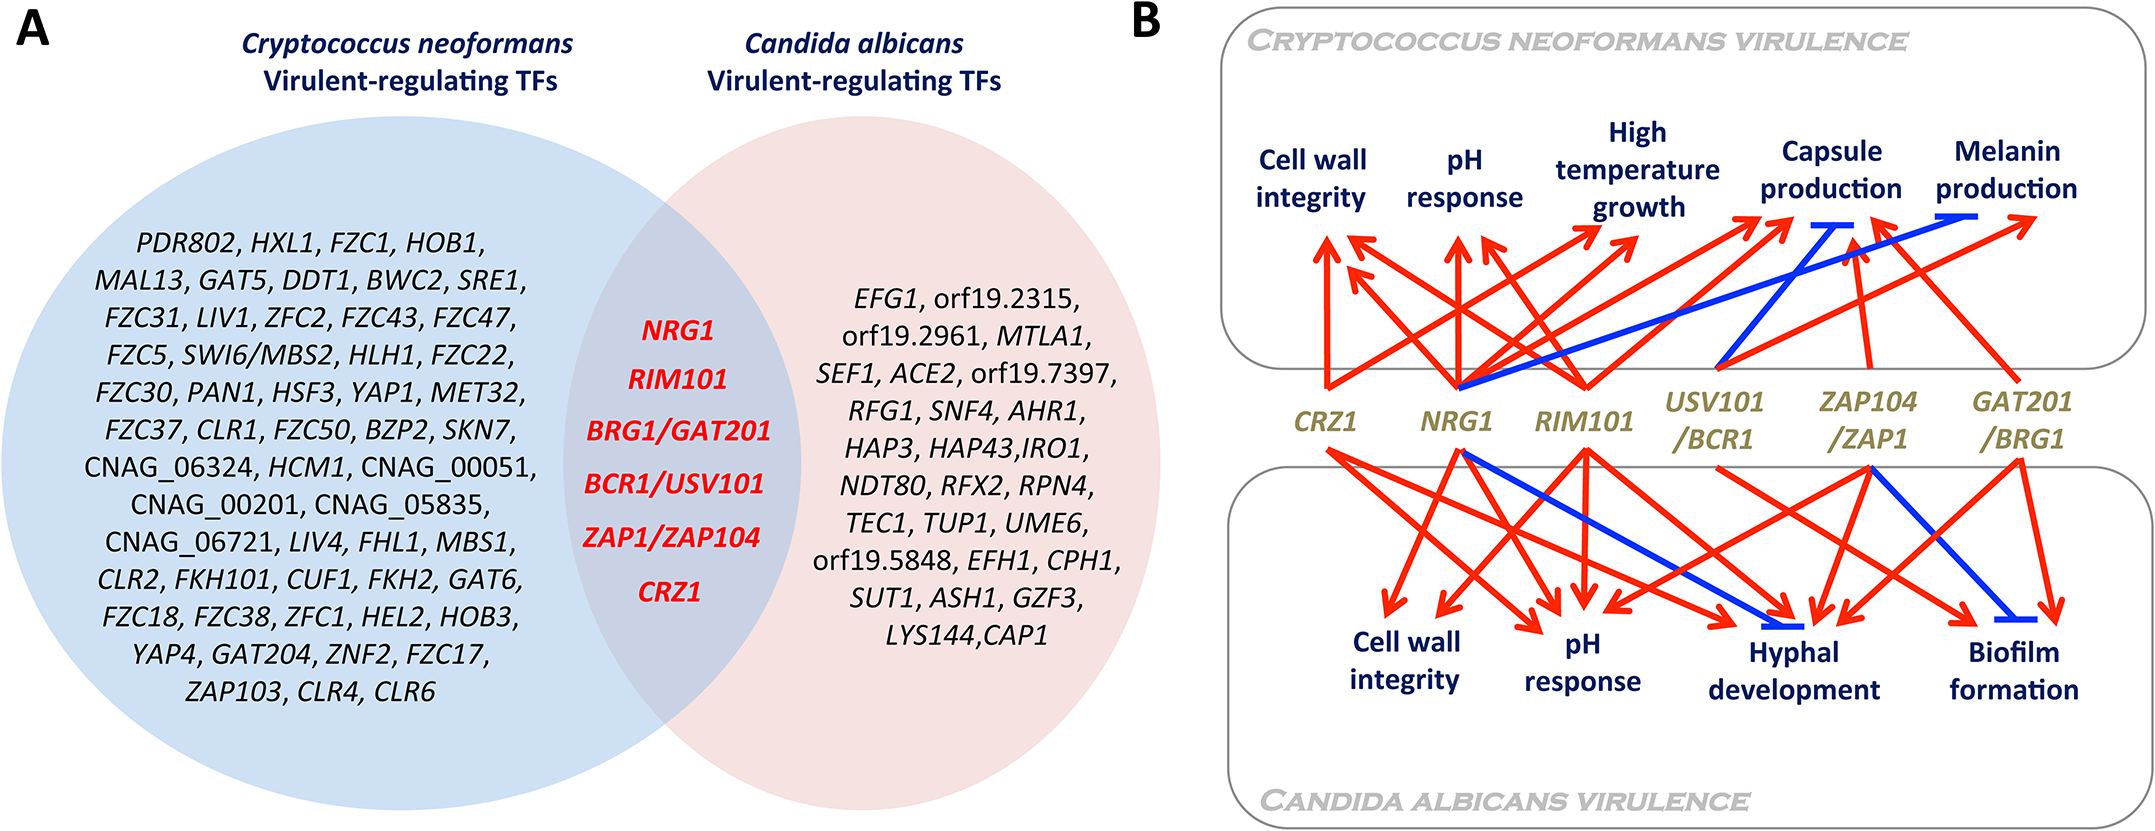 Virulence-regulating transcription factors in <i>Candida albicans</i> and <i>Cryptococcus neoformans</i>.